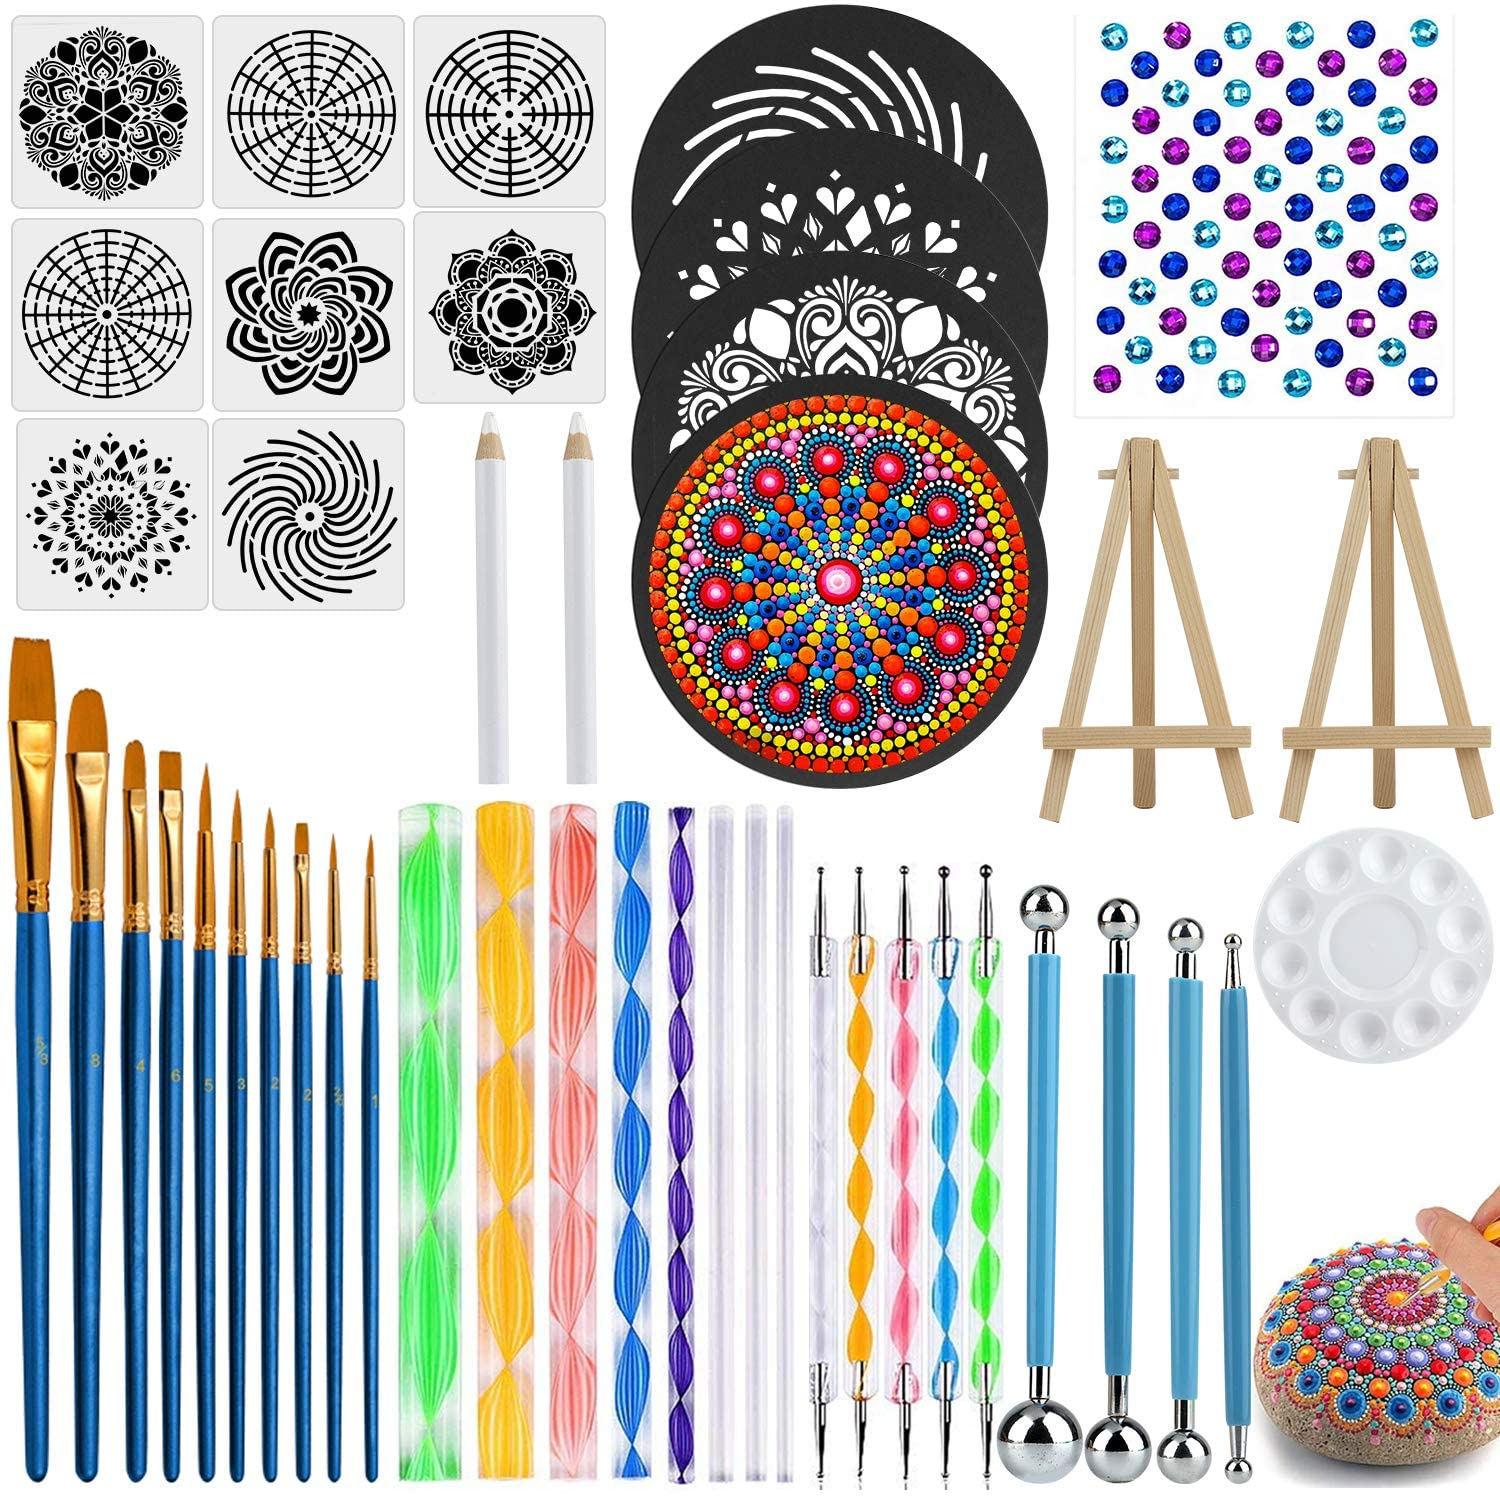 Apsung 45 PCS Mandala Dotting Tools Set, Professional Stencil Painting Arts Supplies Tools Kits Including Stencil Templates, Mini Easel for Painting Rocks Drawing, Drafting, Painting and Coloring